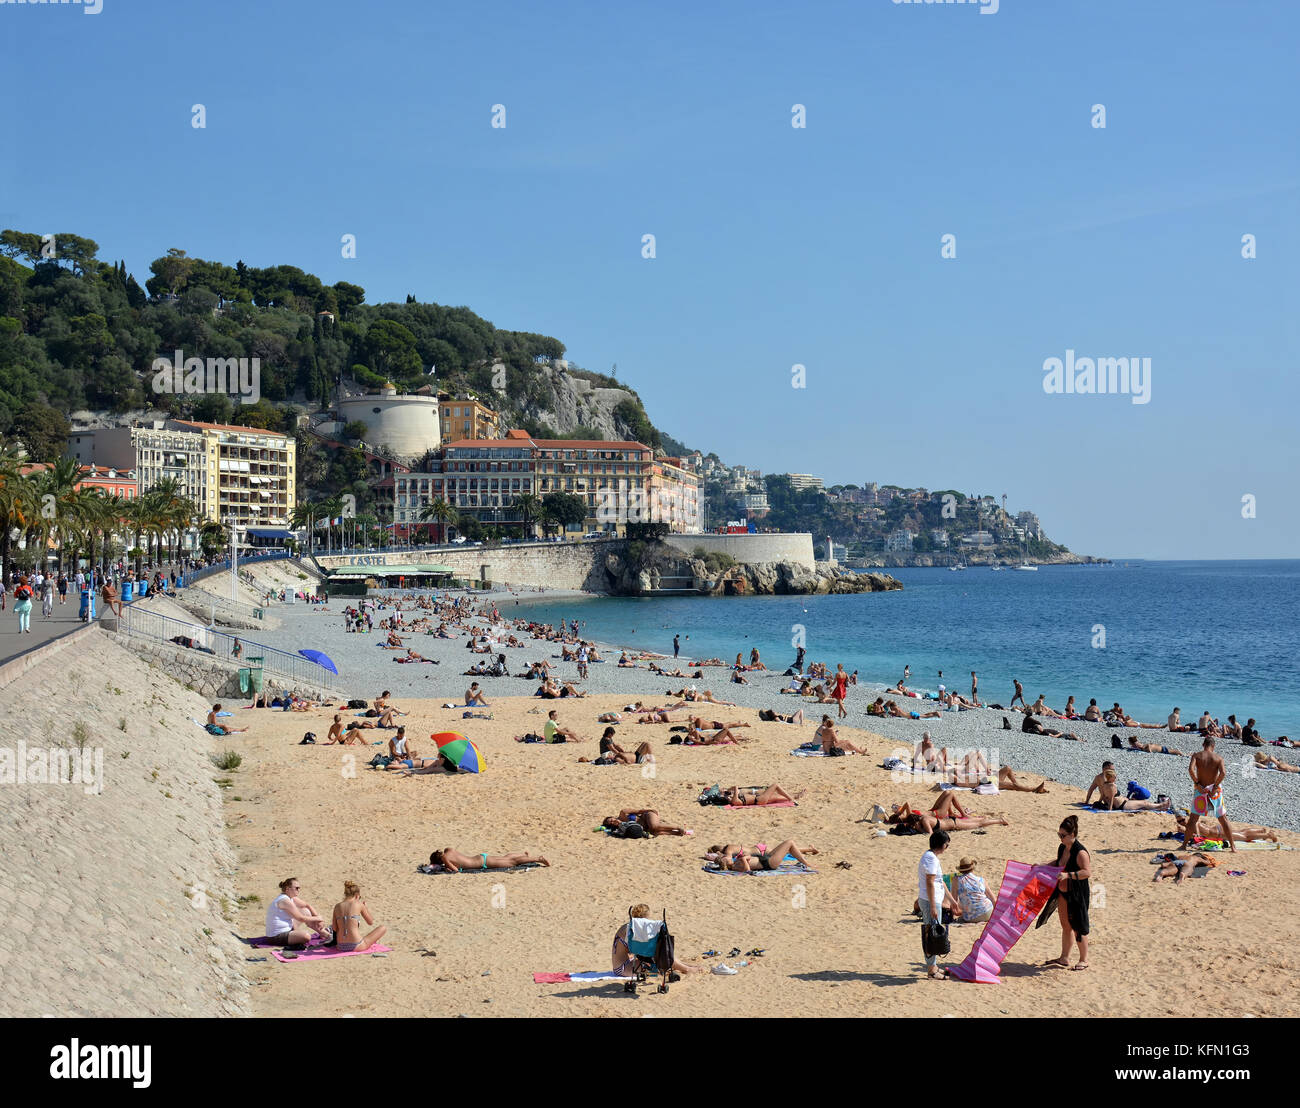 Nice, France - September 27, 2017: People on the Beach and Promenade at Nice, France - Stock Image